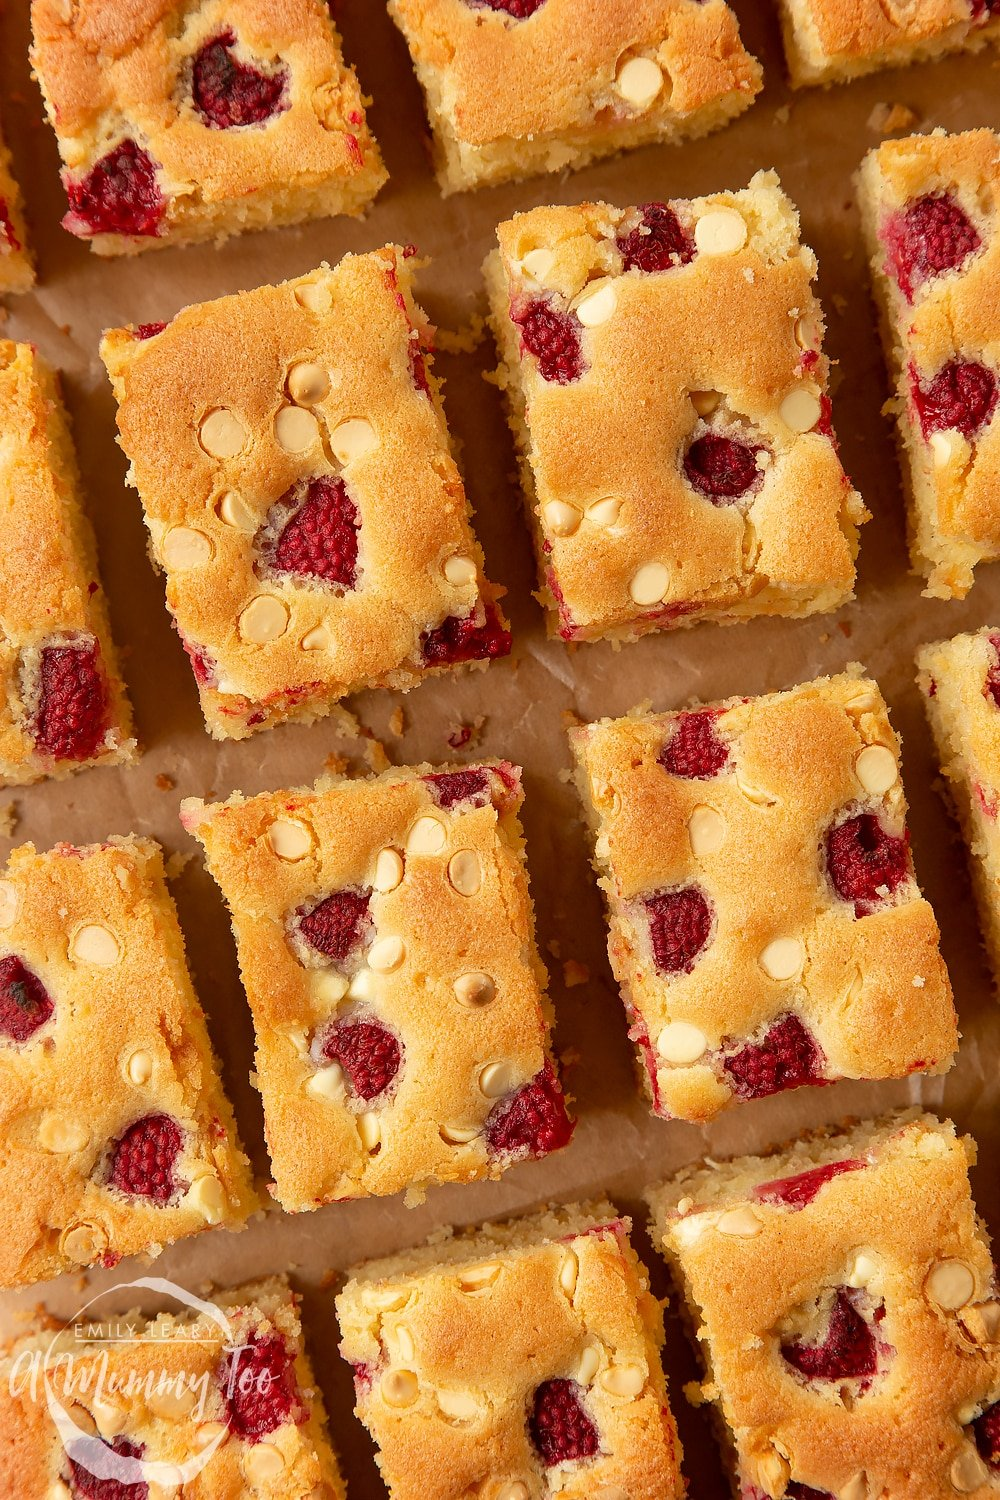 Close up of a raspberry and white chocolate traybake cut into 16 pieces.